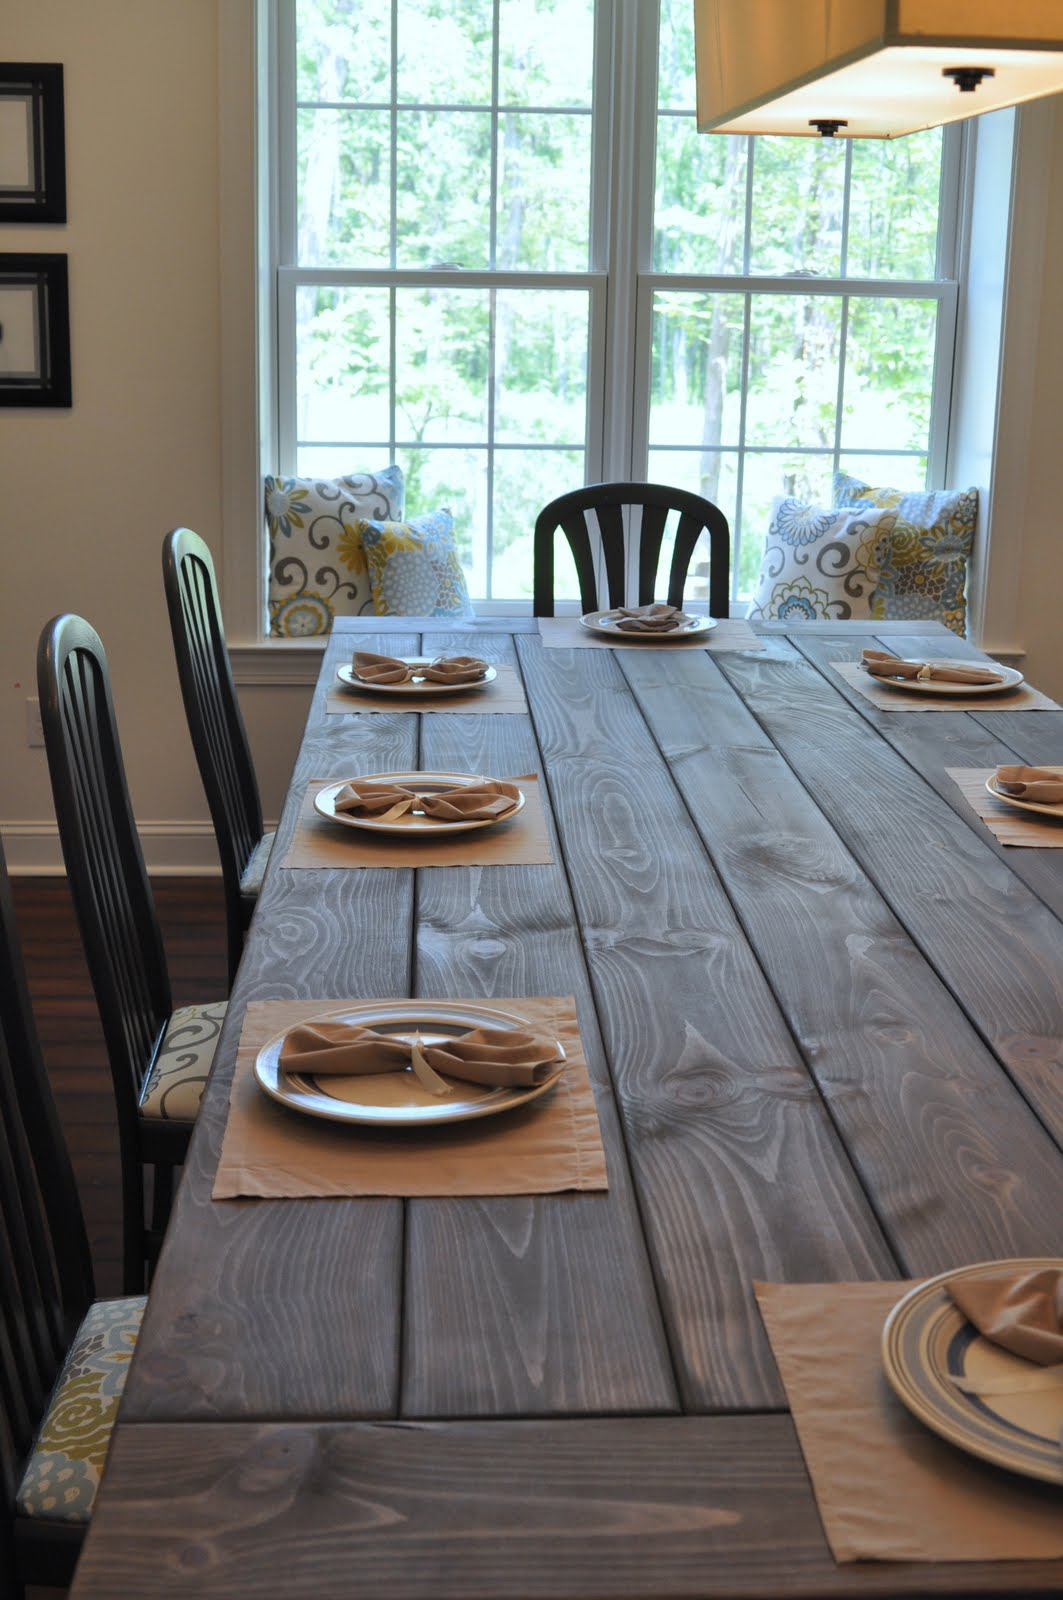 Diy 8 Person Dining Table Farmhouse Table Remix How To Build A Farmhouse Table